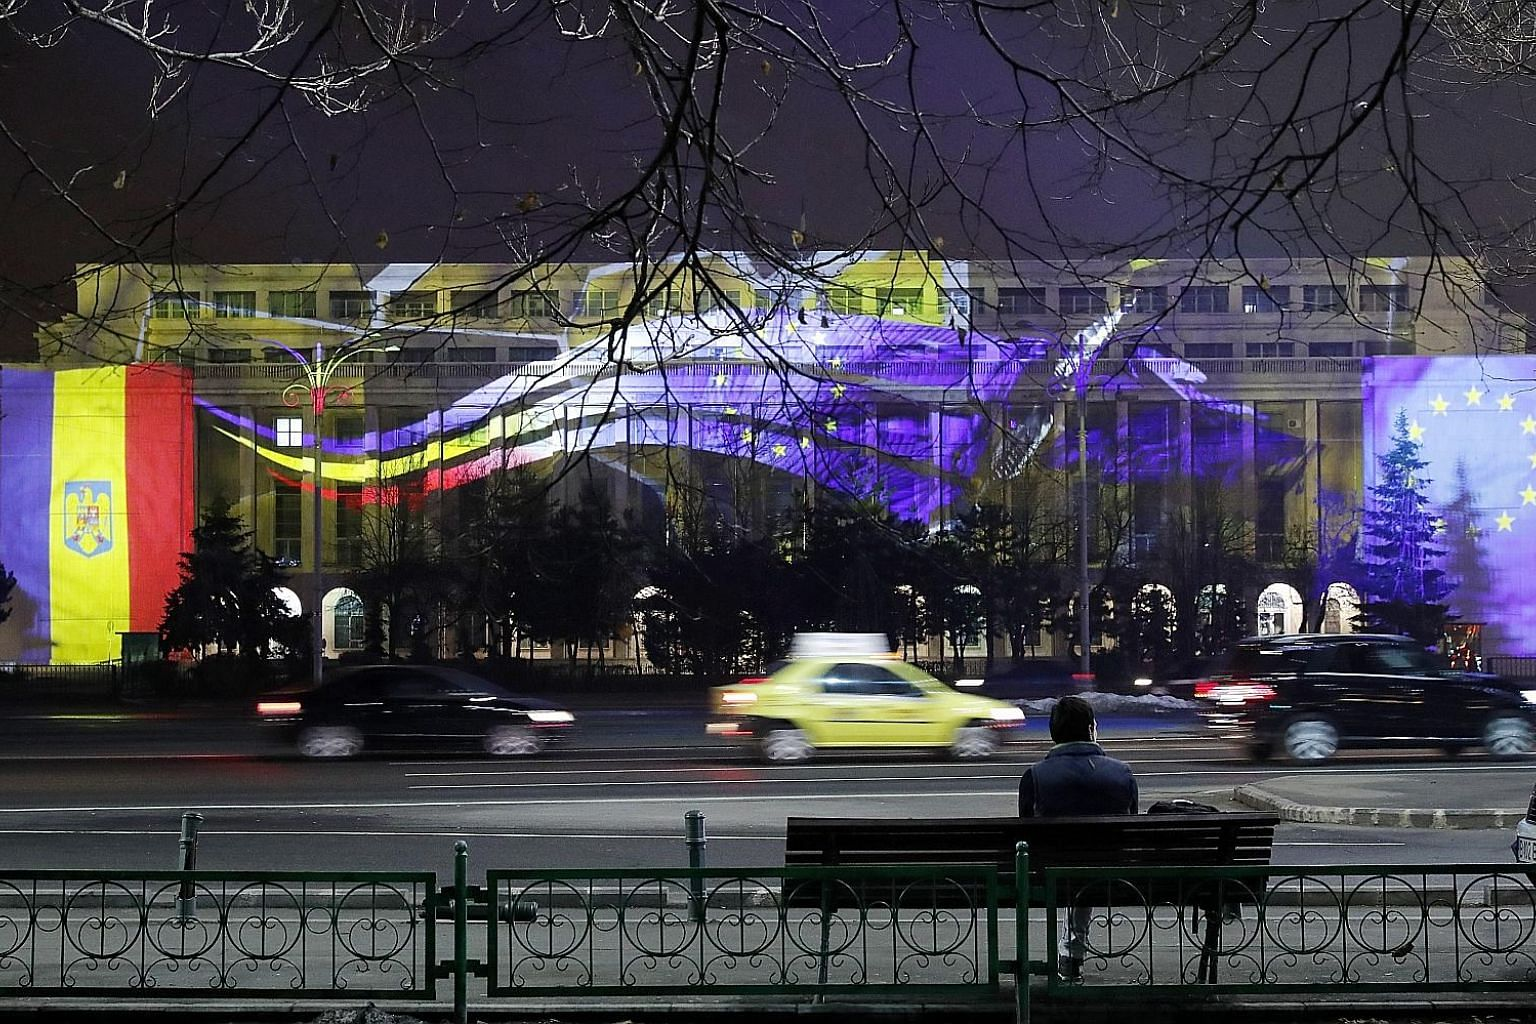 Victoria Palace - the Romanian government headquarters - with the flags of Romania (left) and European Union projected on its facade to mark the country's EU presidency for half a year from this month.